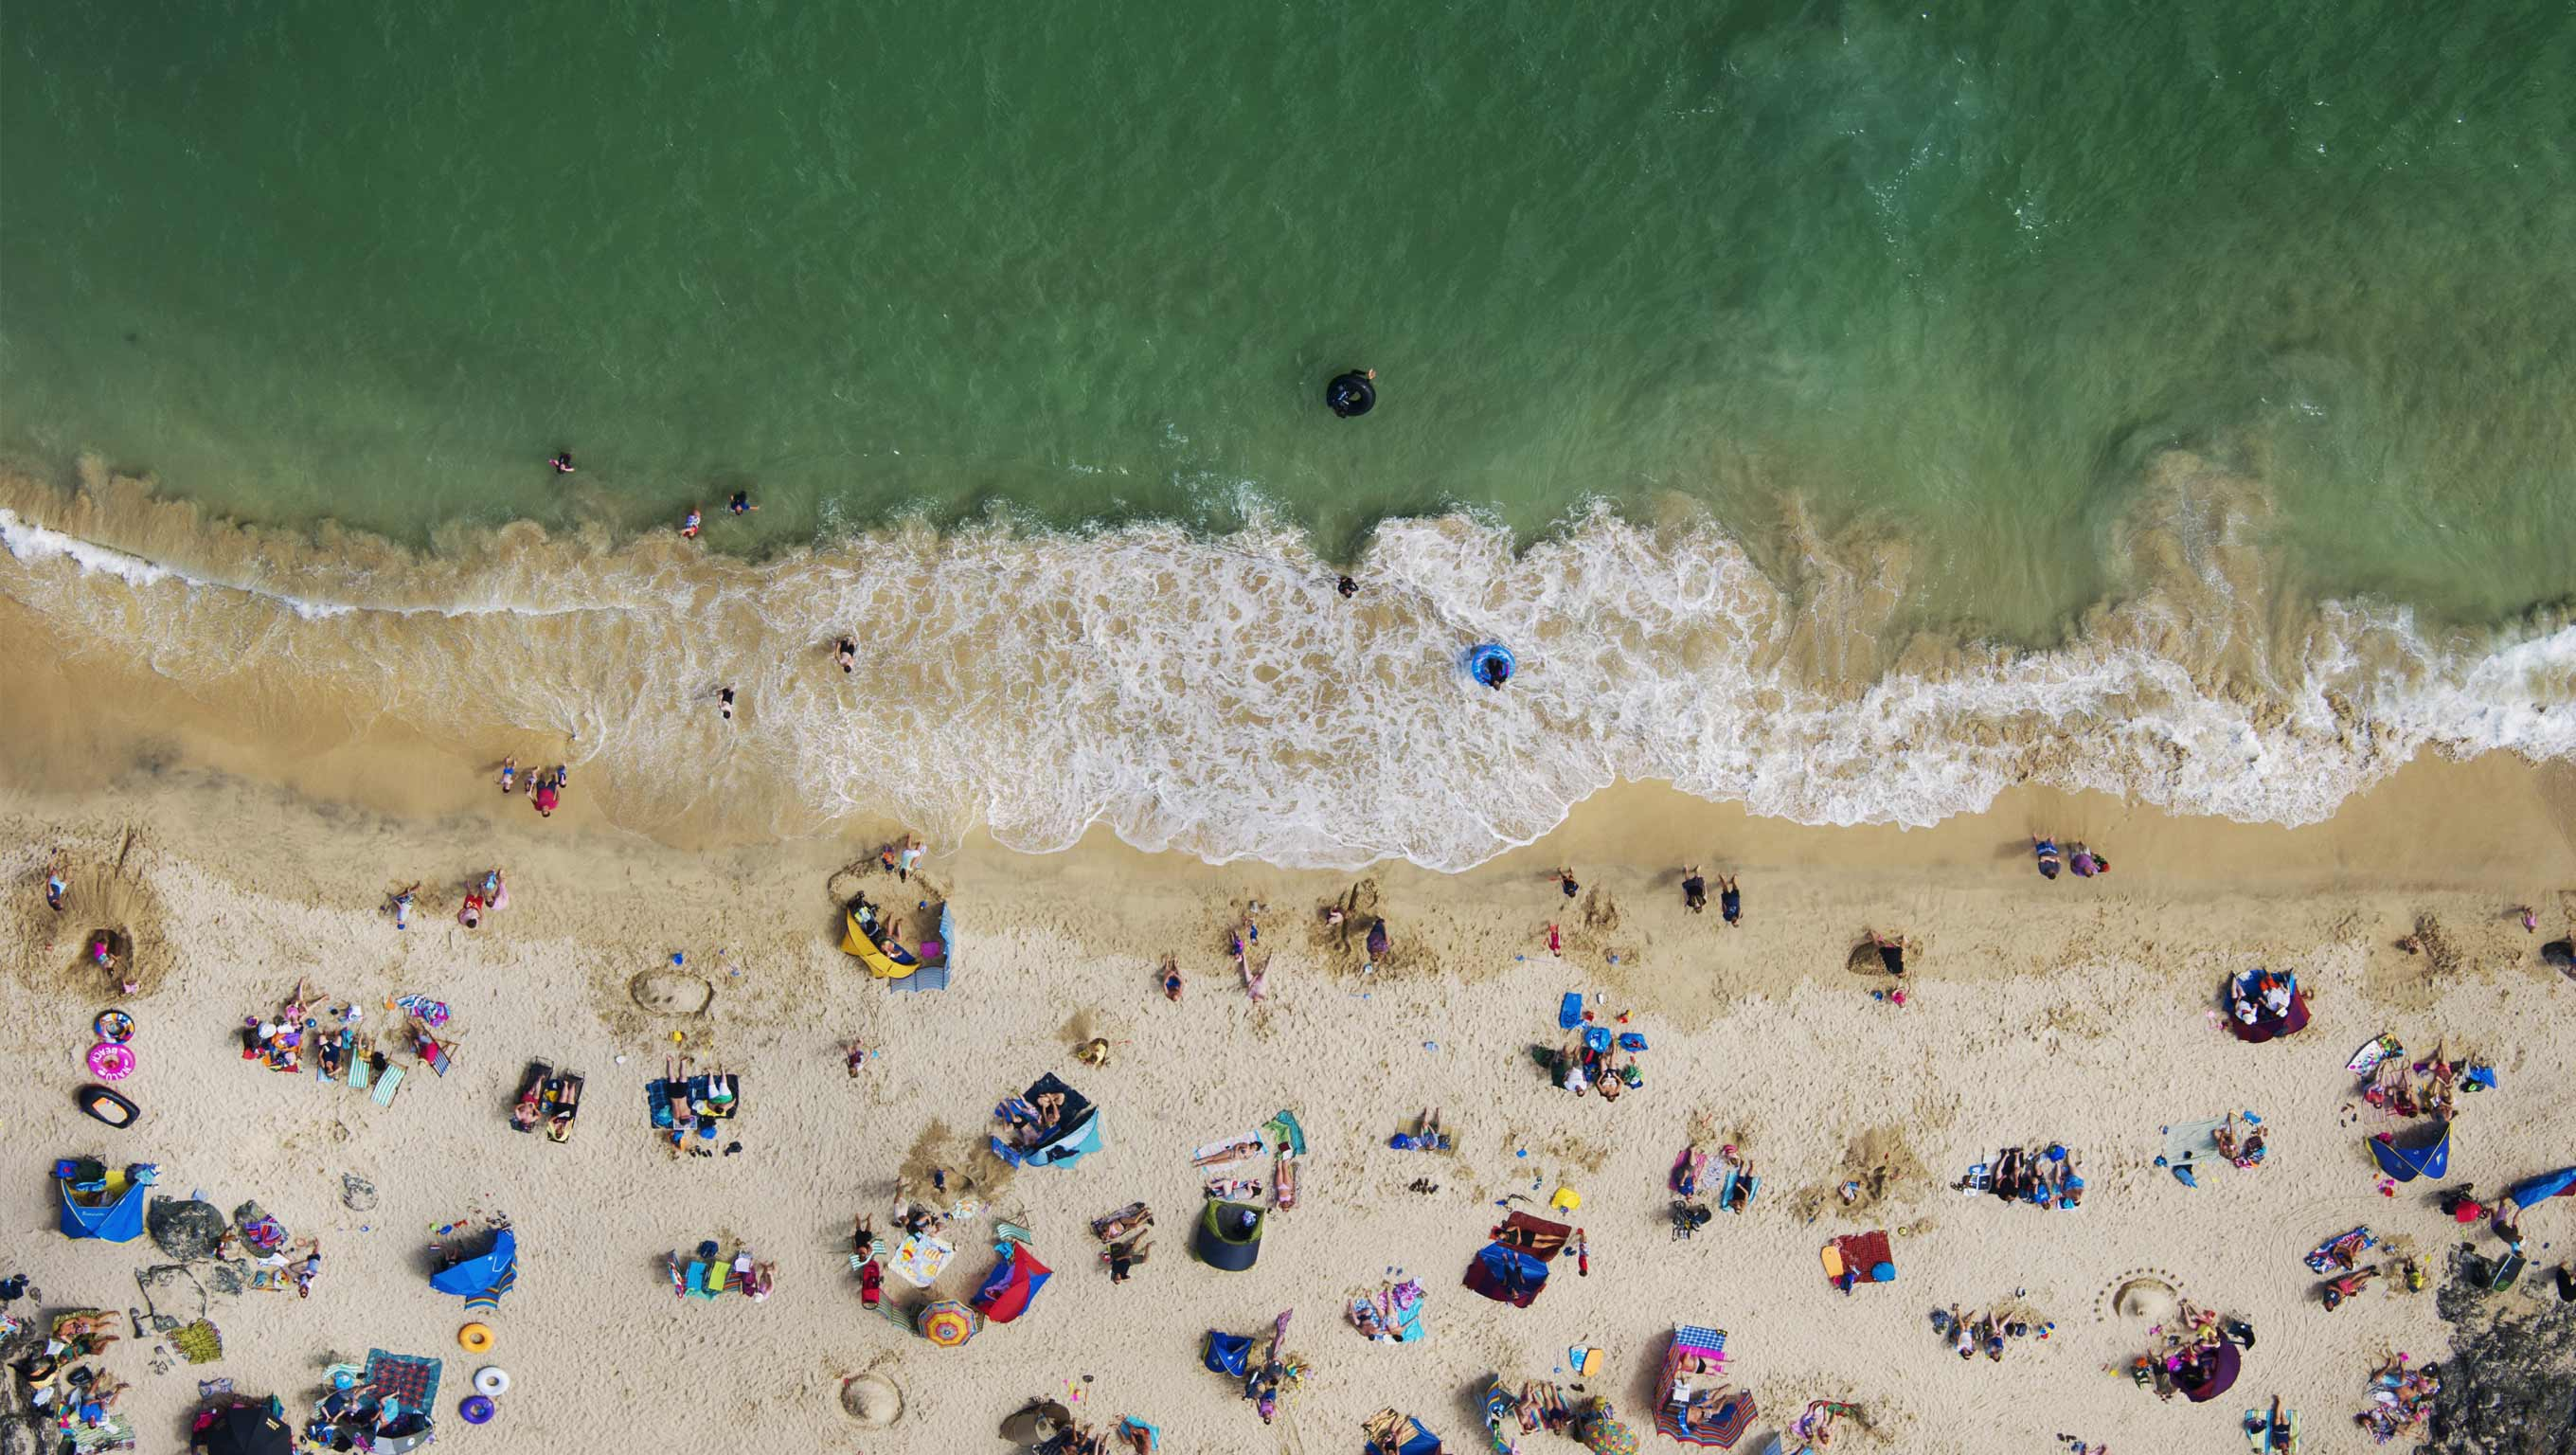 Aerial view of a beach by Nigel Millard